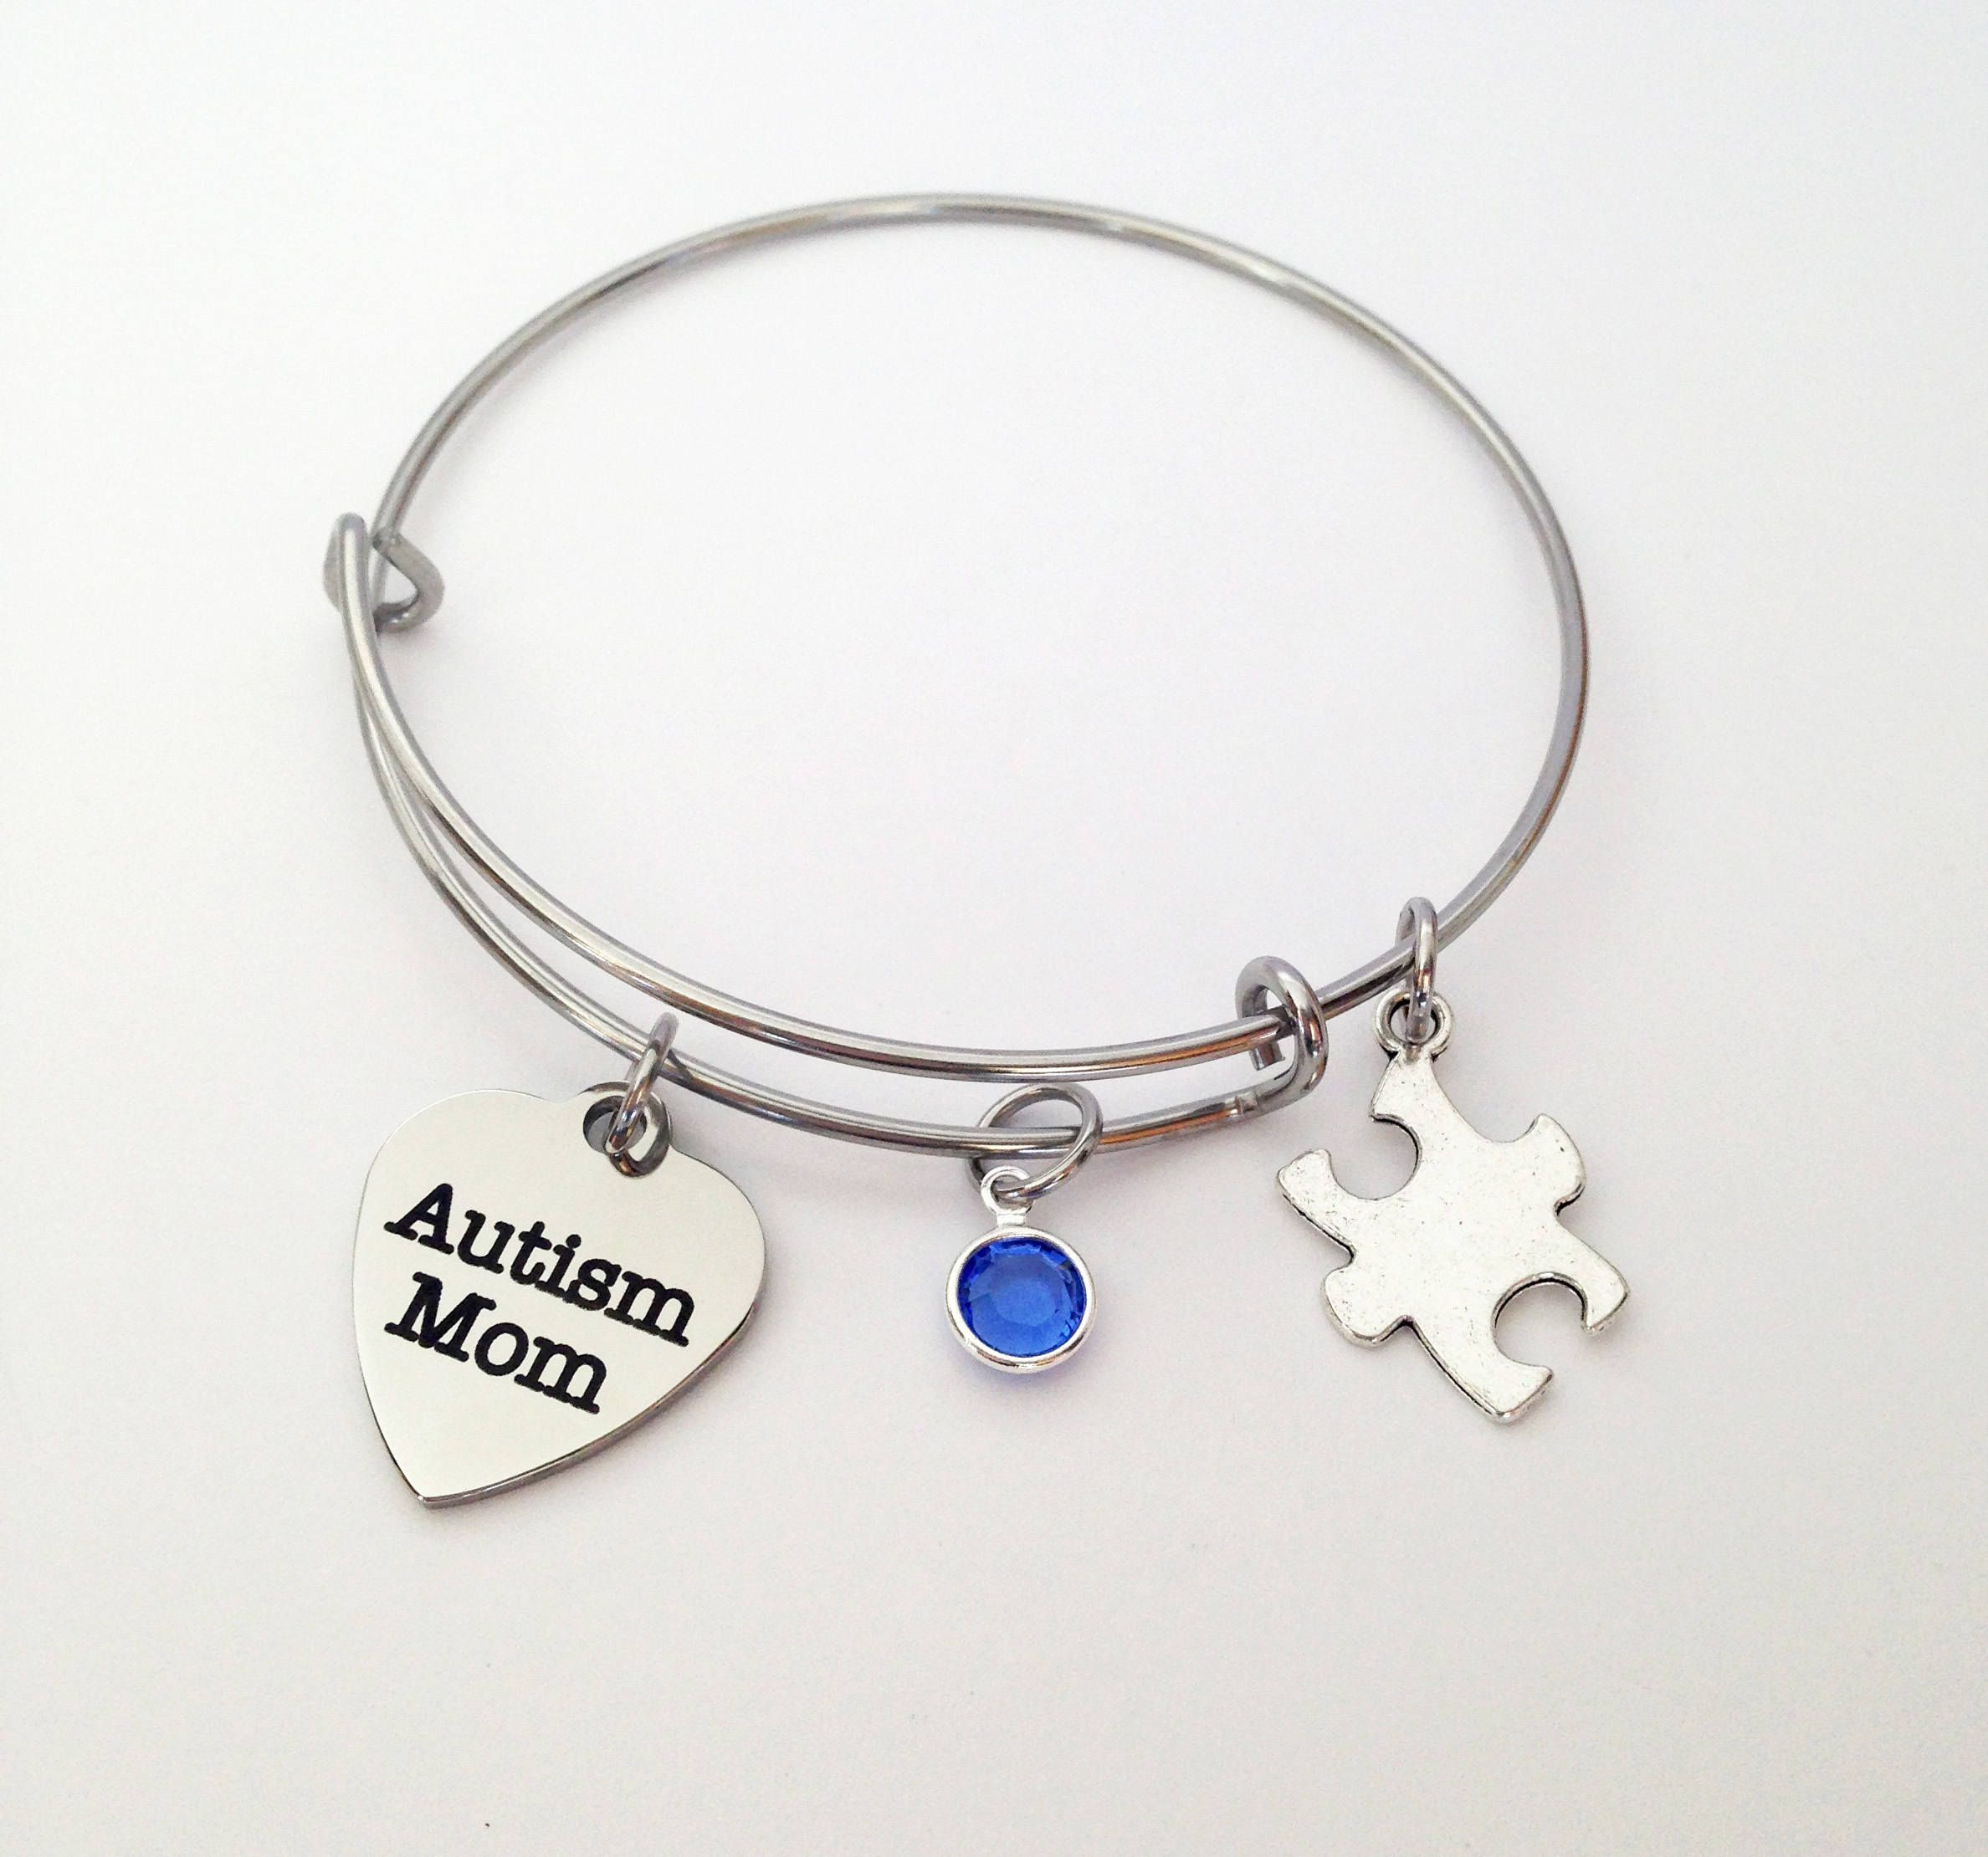 winter cancer giving campaign bracelet coalition img bracelets awareness nevada